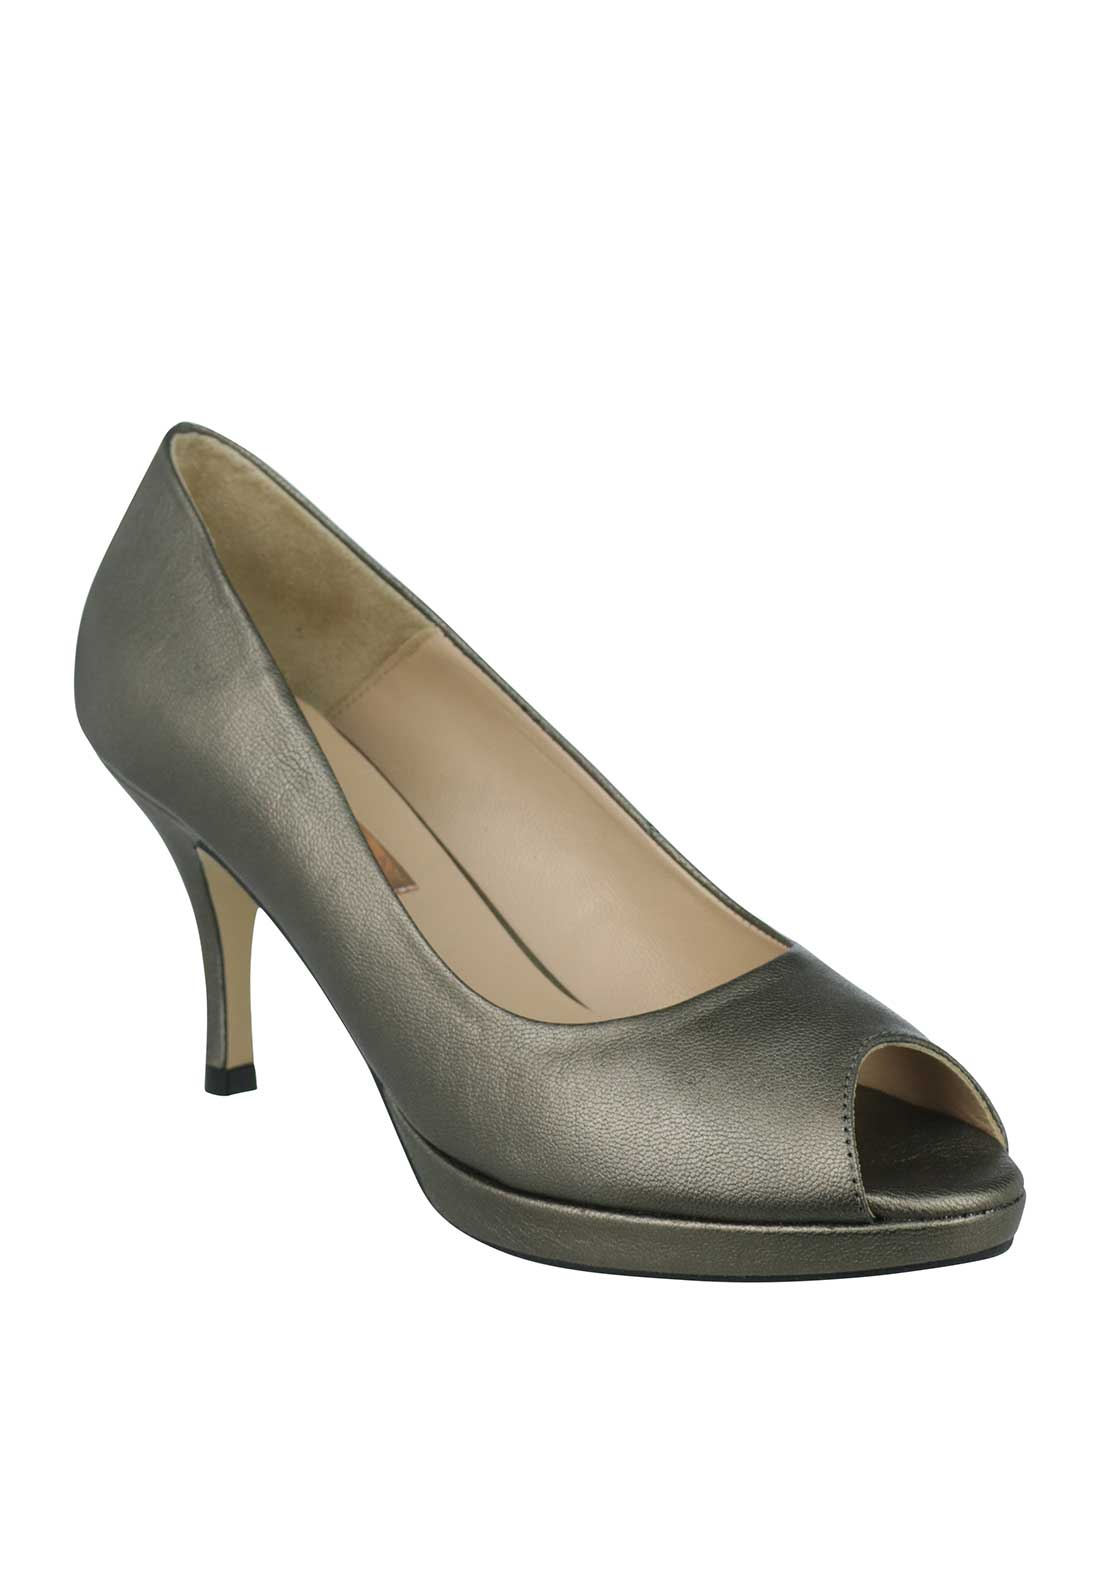 Marian Leather Peep Toe Heeled Shoes, Pewter